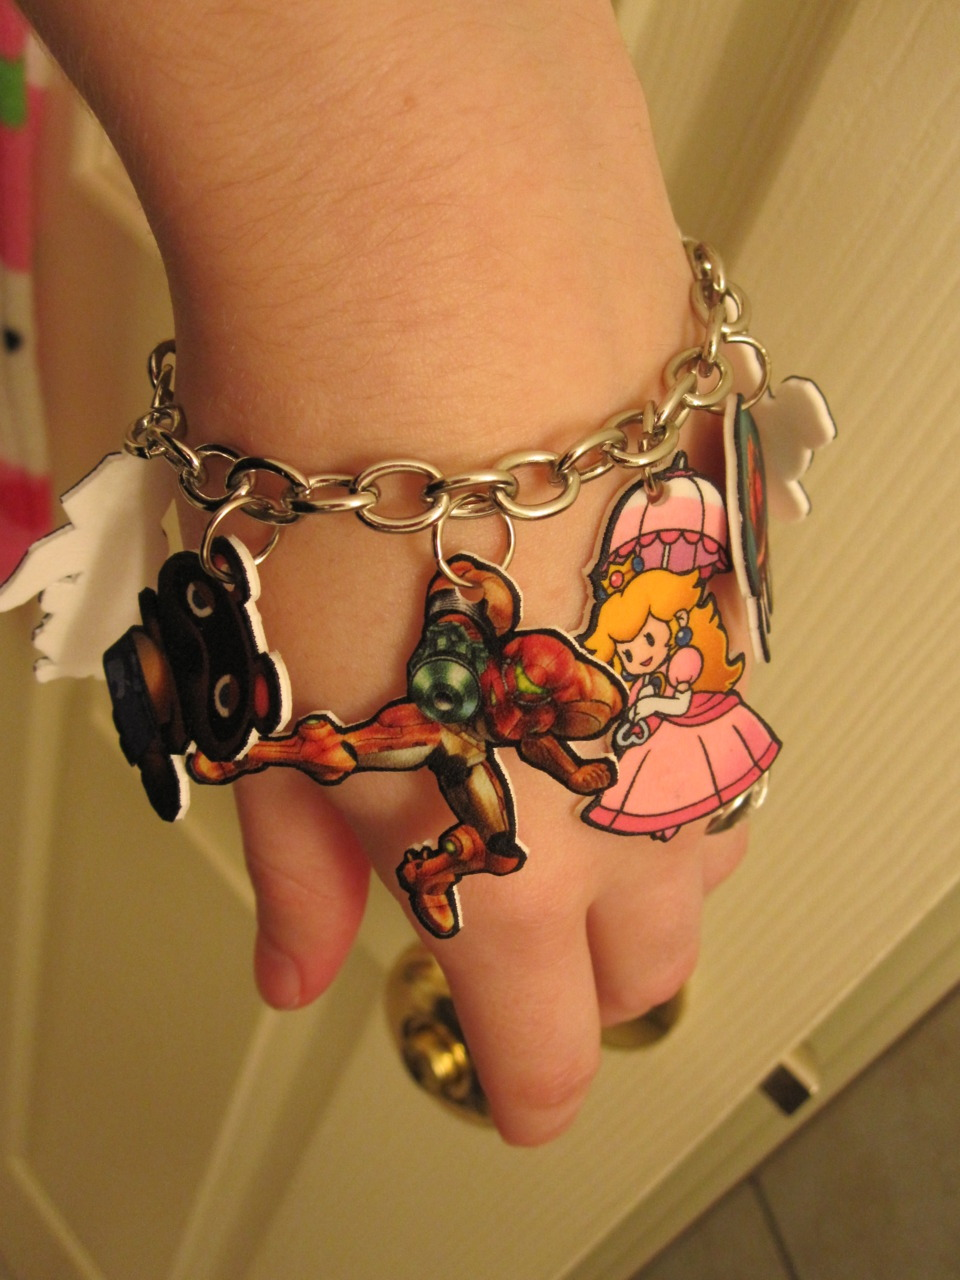 pale-little-thing:  Cute little Nintendo charm bracelet I made. (My Etsy)